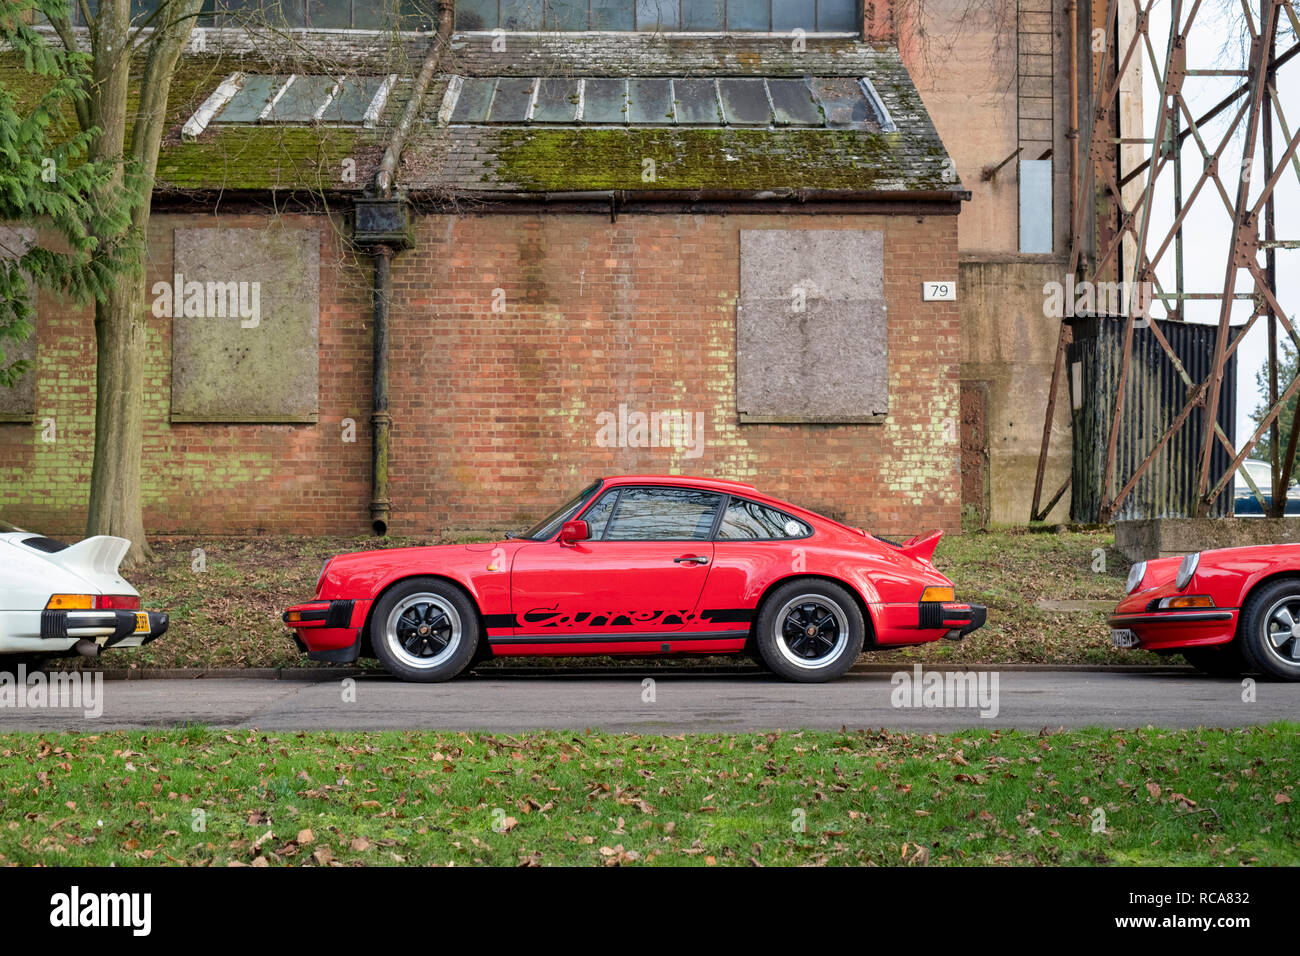 Garage Porsche Strasbourg Winter Porsche Stock Photos Winter Porsche Stock Images Alamy